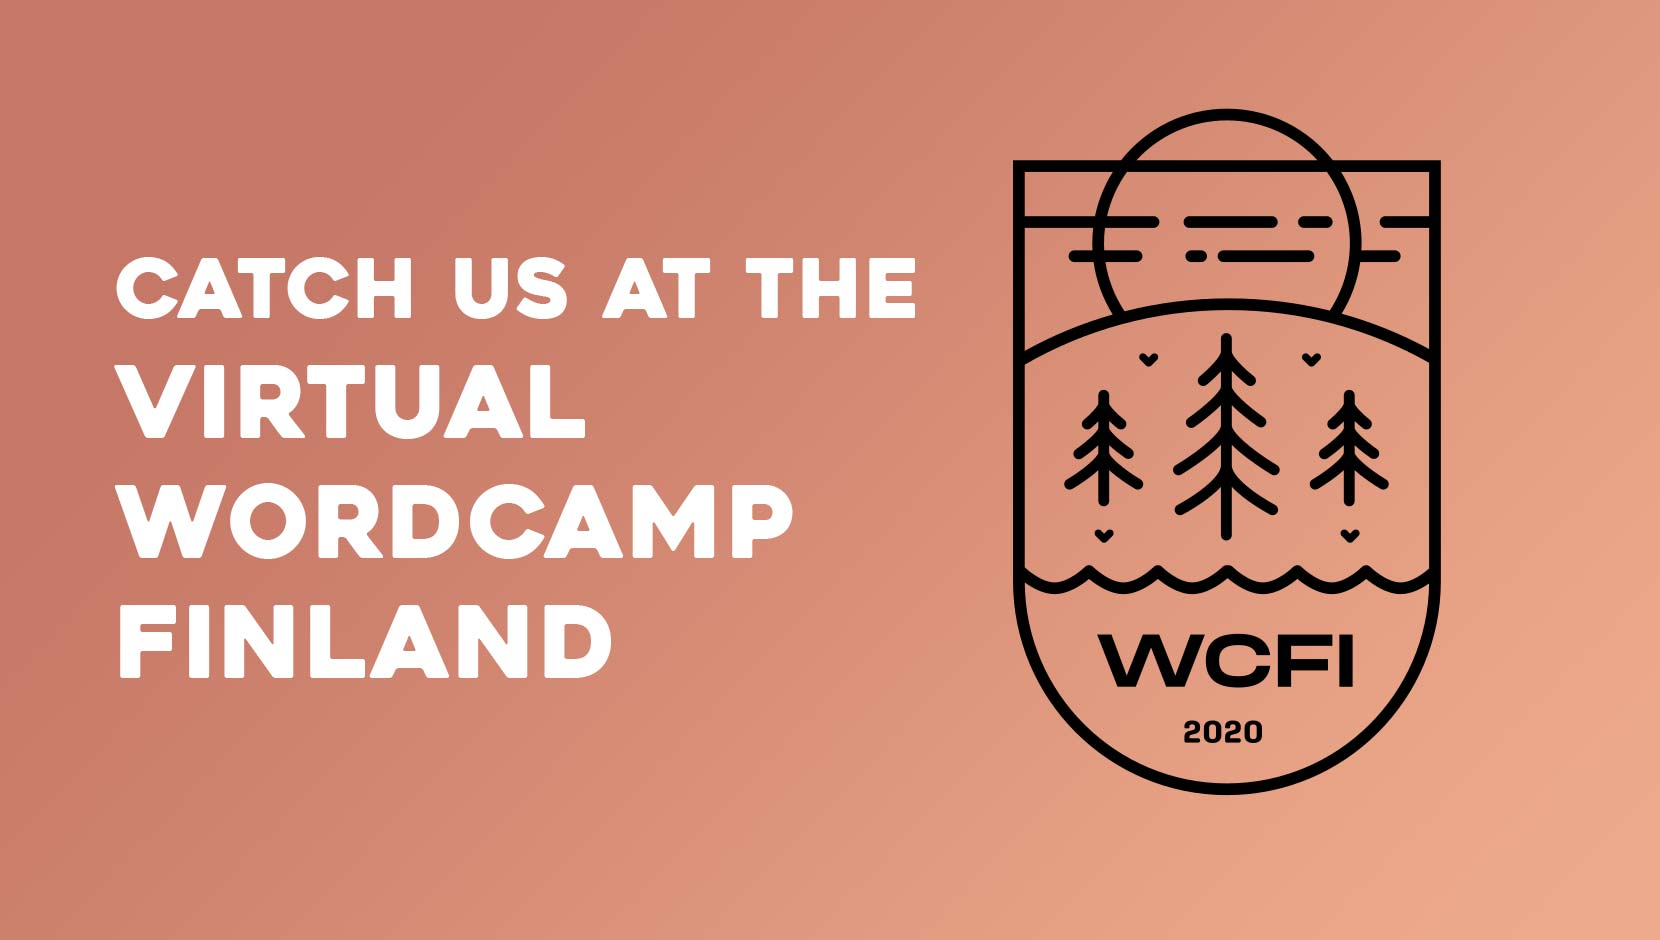 Catch us at the Virtual WordCamp Finland